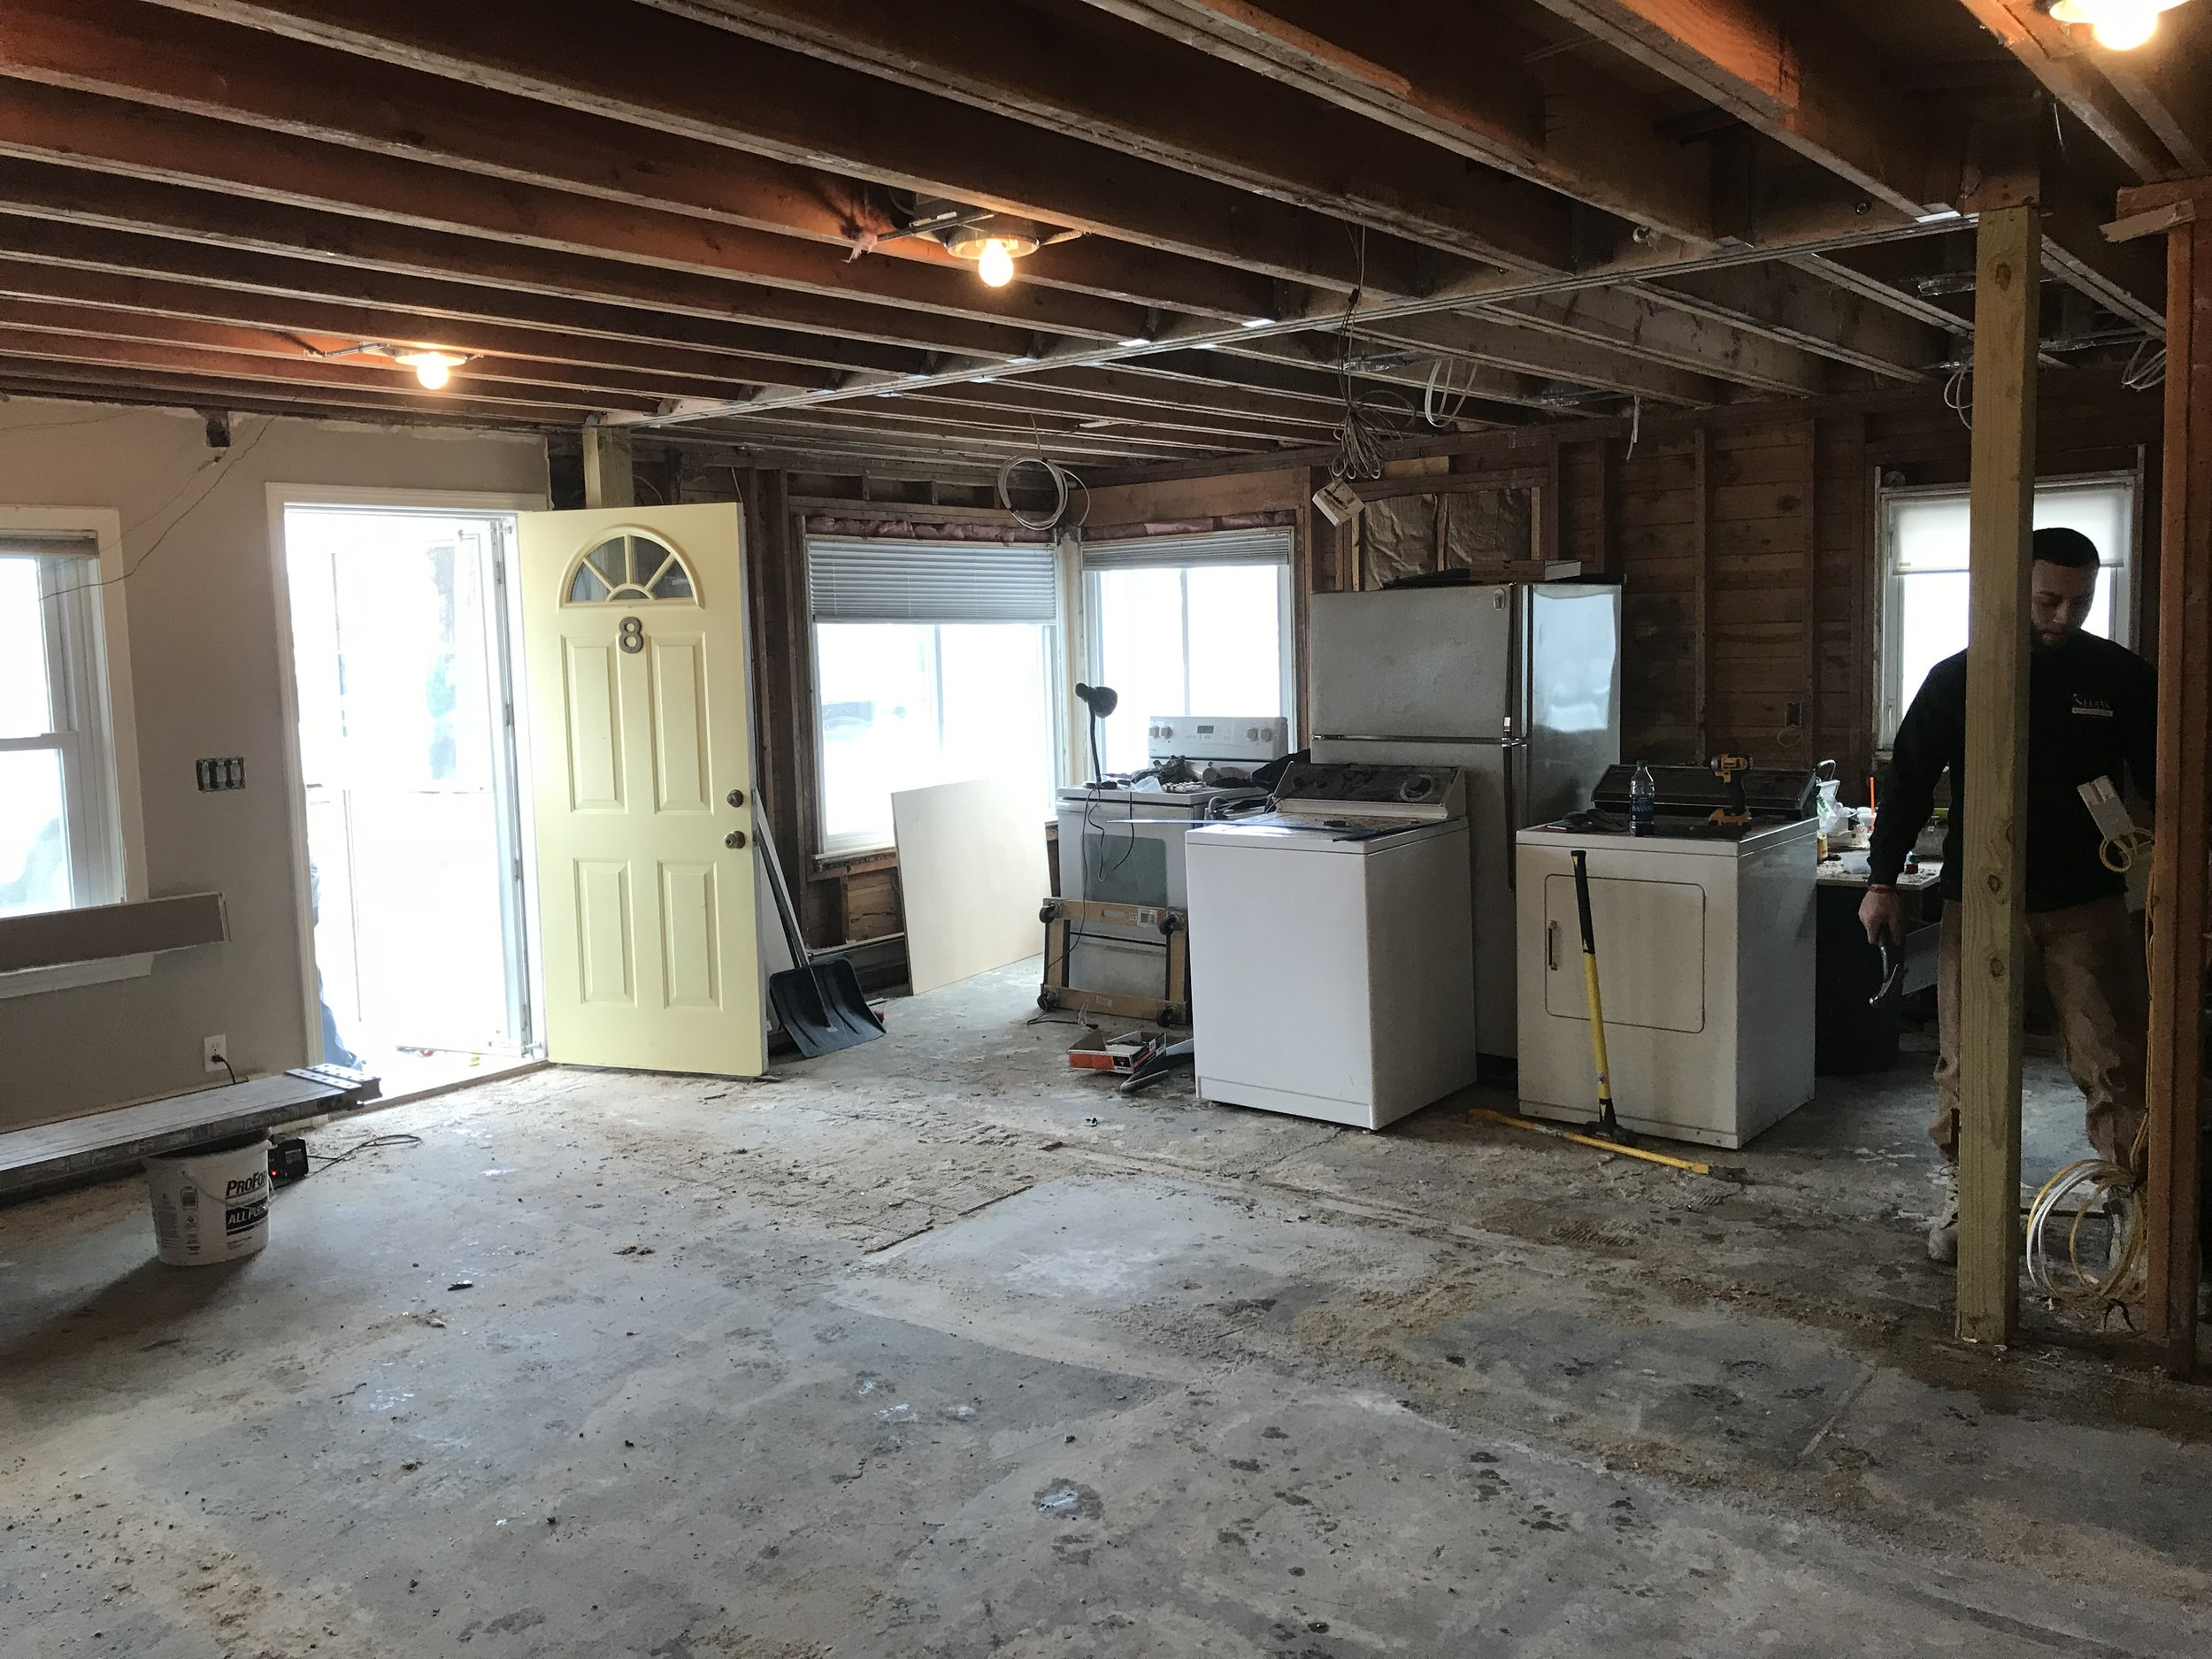 Shaw Remodeling - Progress photo - Kitchen and living room renovations with new ceiling beam - Niantic CT  (2).jpg